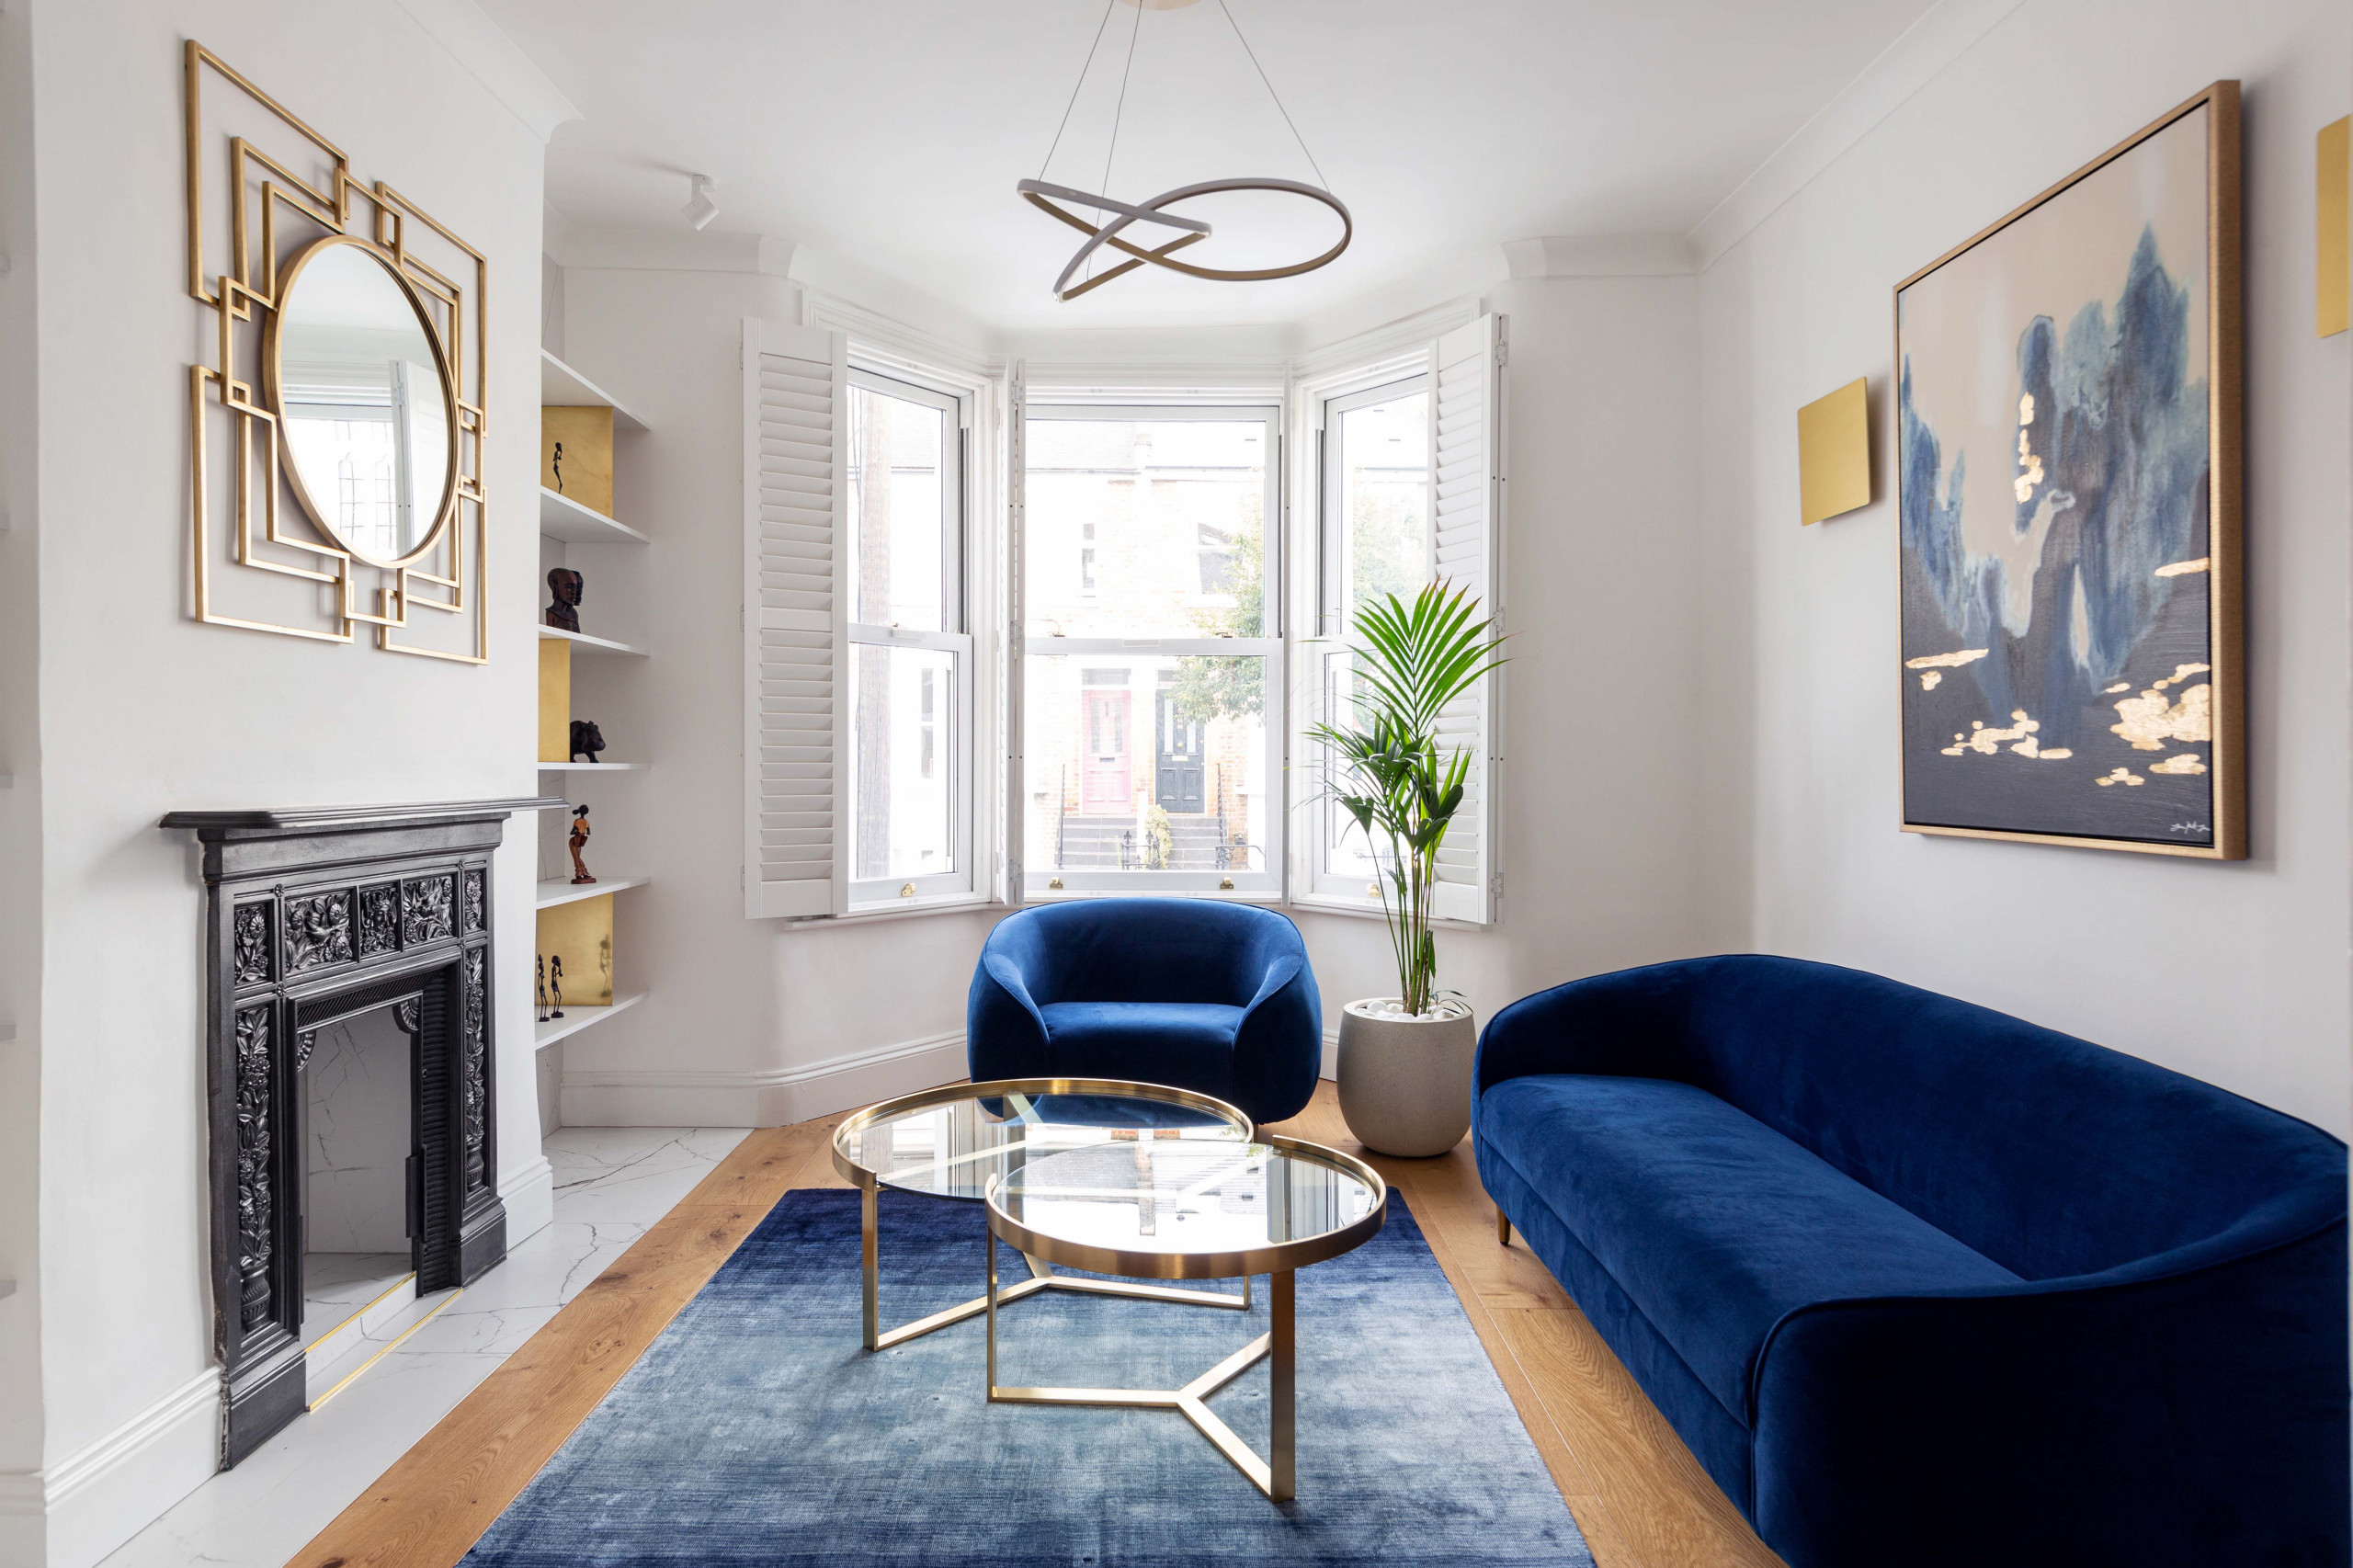 Single family house in West London